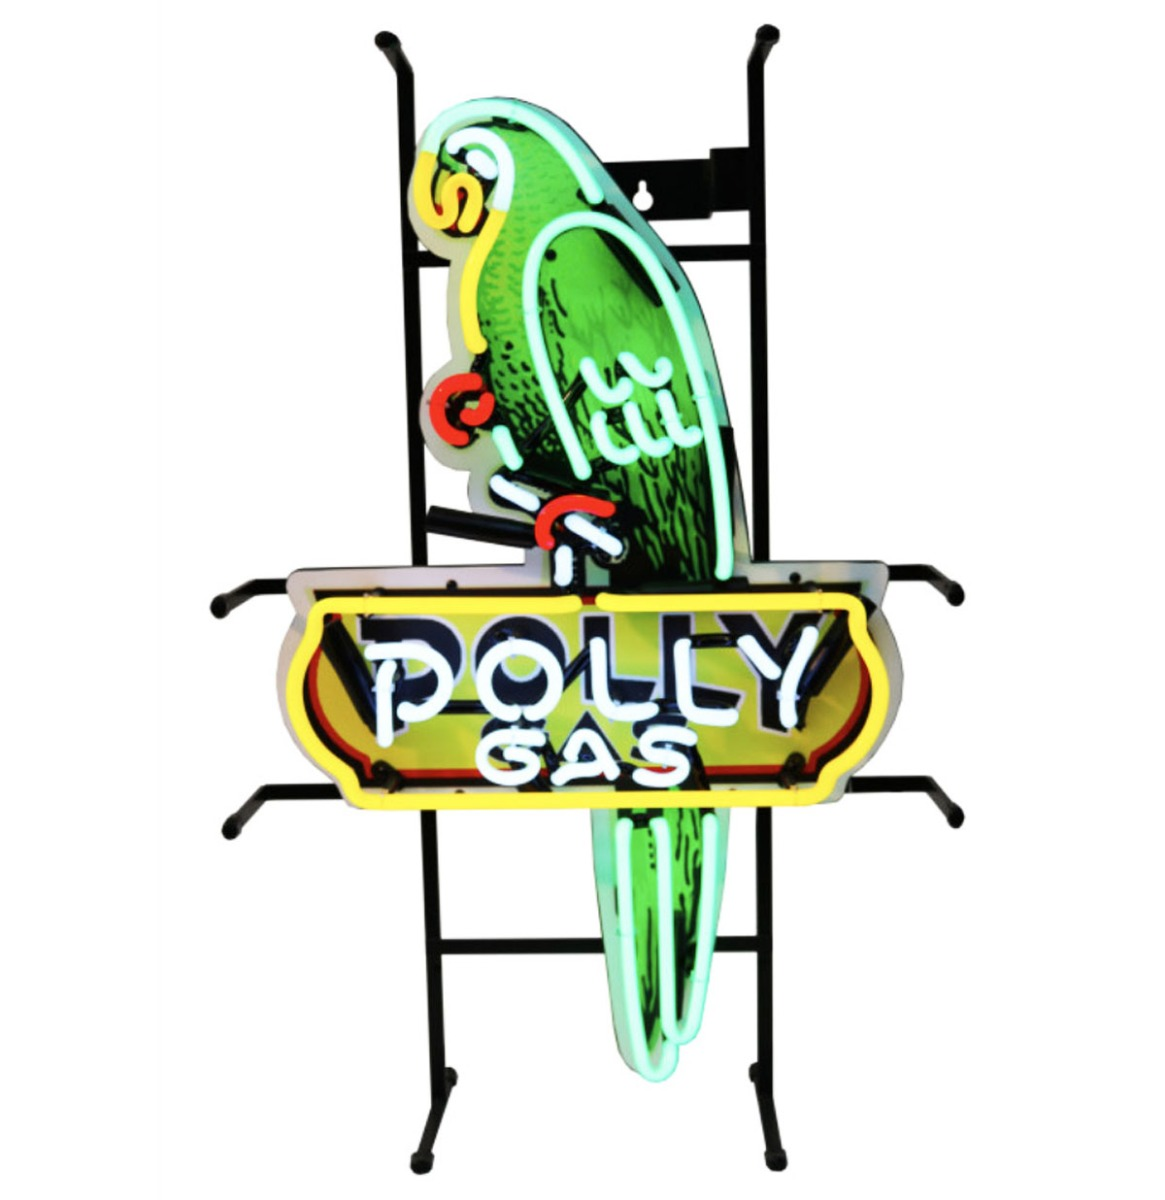 Polly Gas Parrot Shaped Neon Verlichting 42 x 65 cm